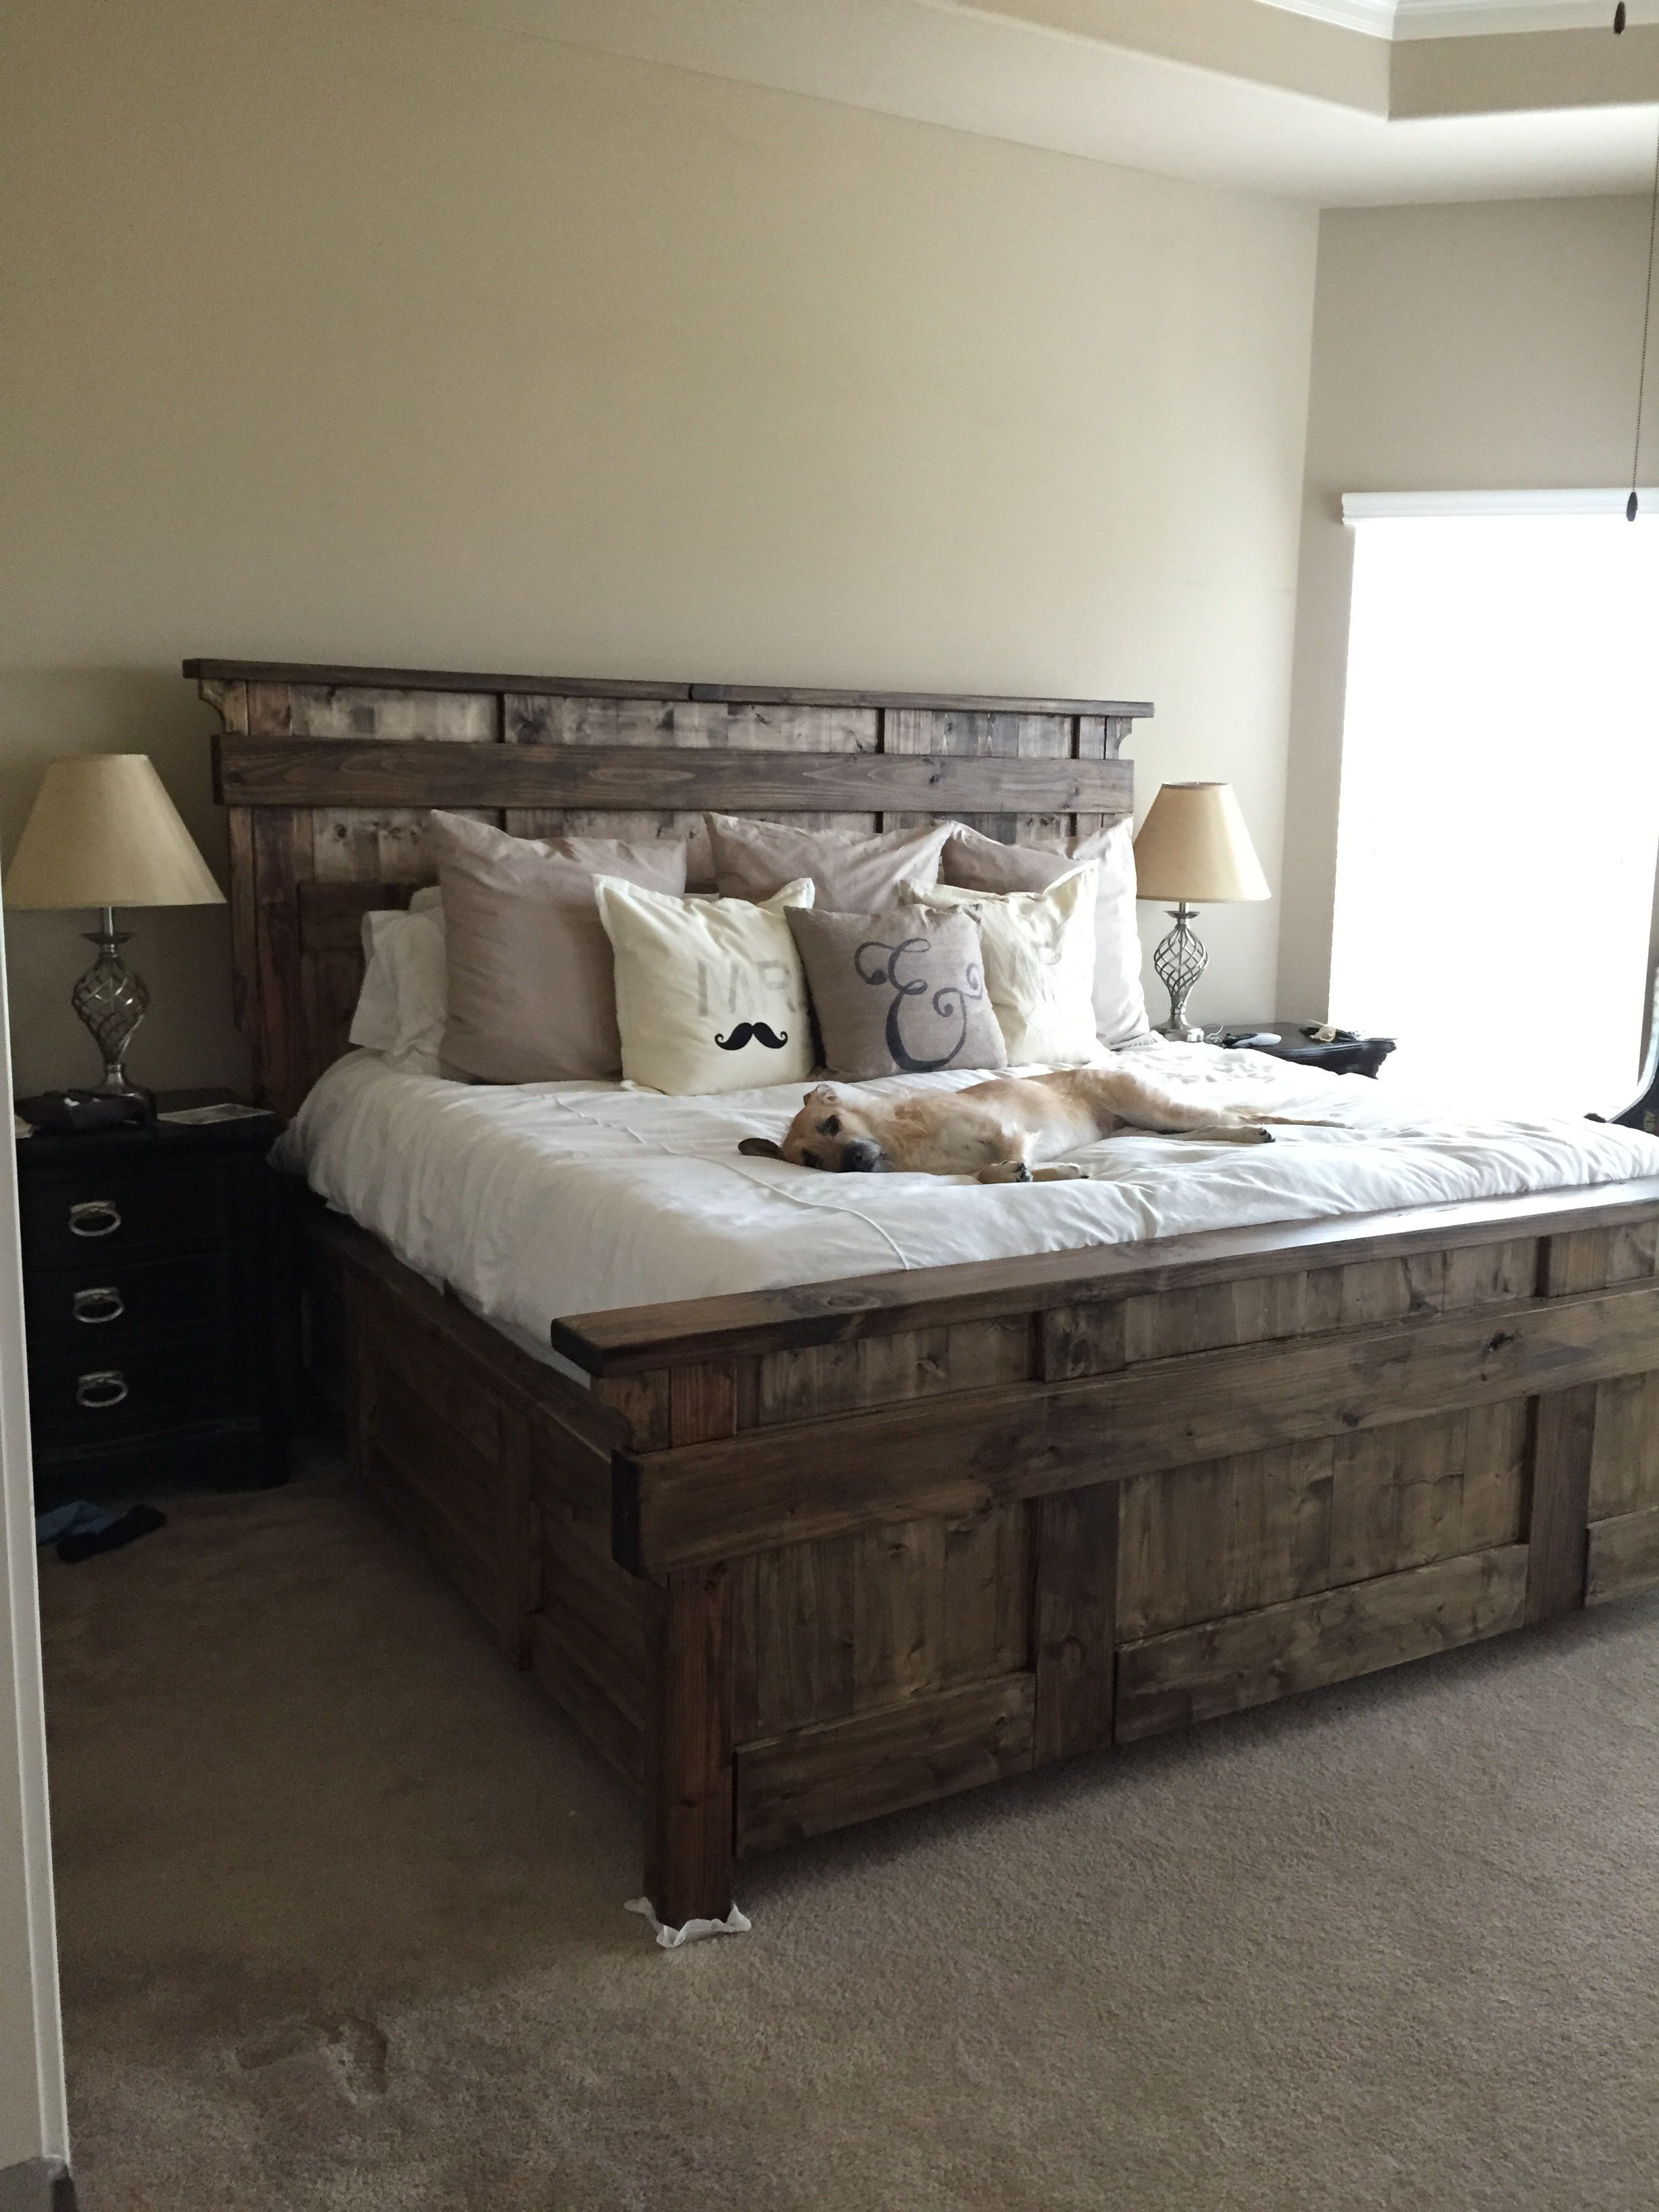 Webb Bed with Nightstands in 2020 (With images) Cheap